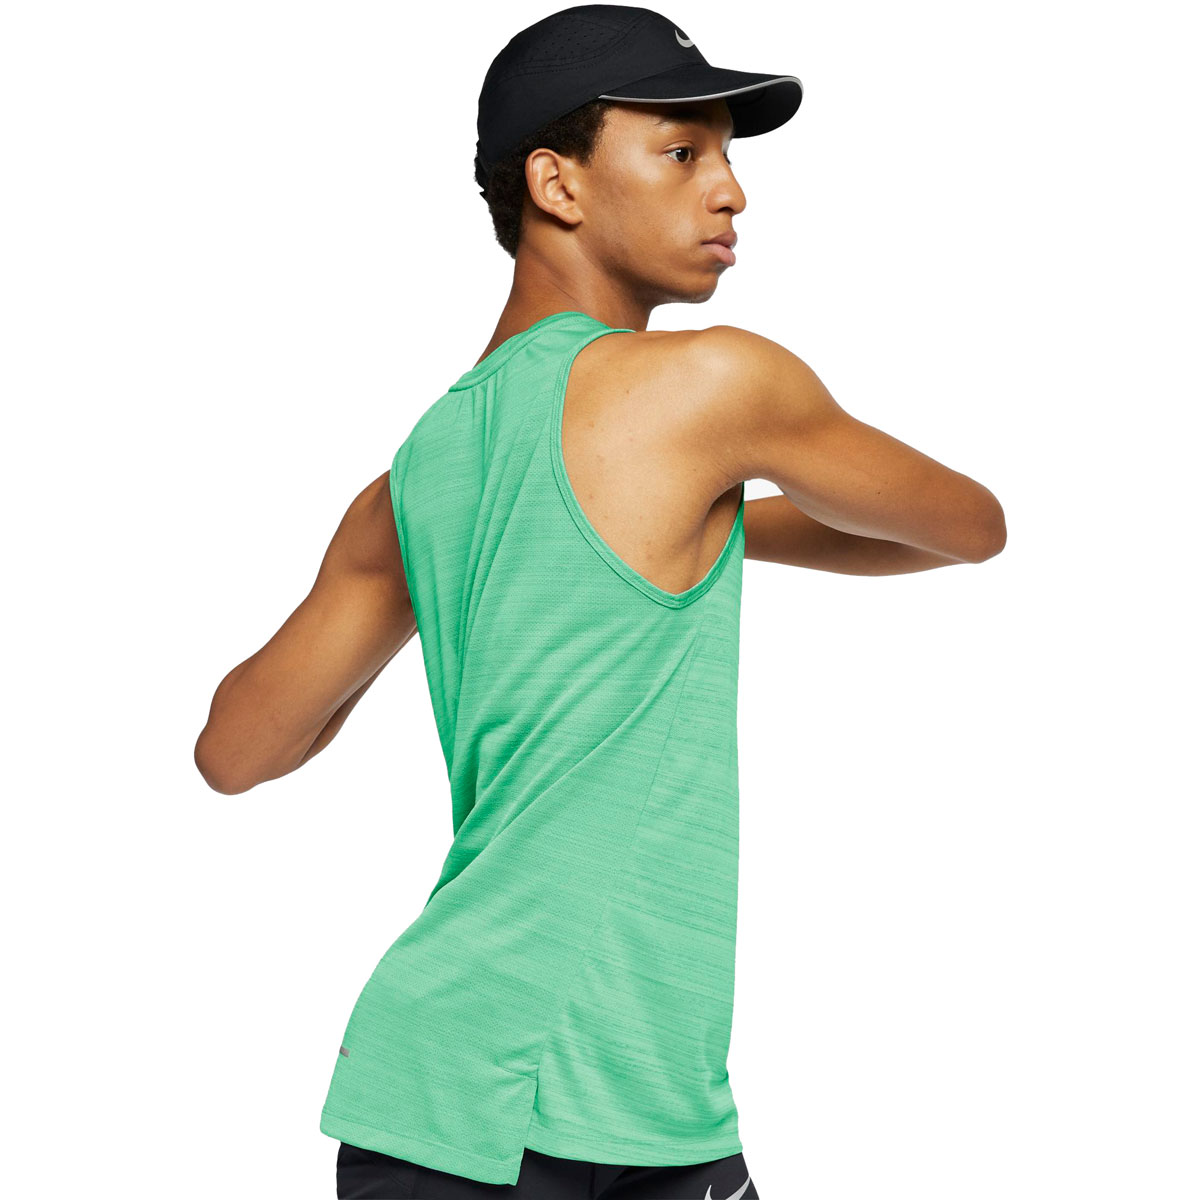 Men's Nike Dri-FIT Miler Running Tank - Color: Vapor Green/Htr/Reflective Silver - Size: S, Vapor Green/Heather/Reflective Silver, large, image 3